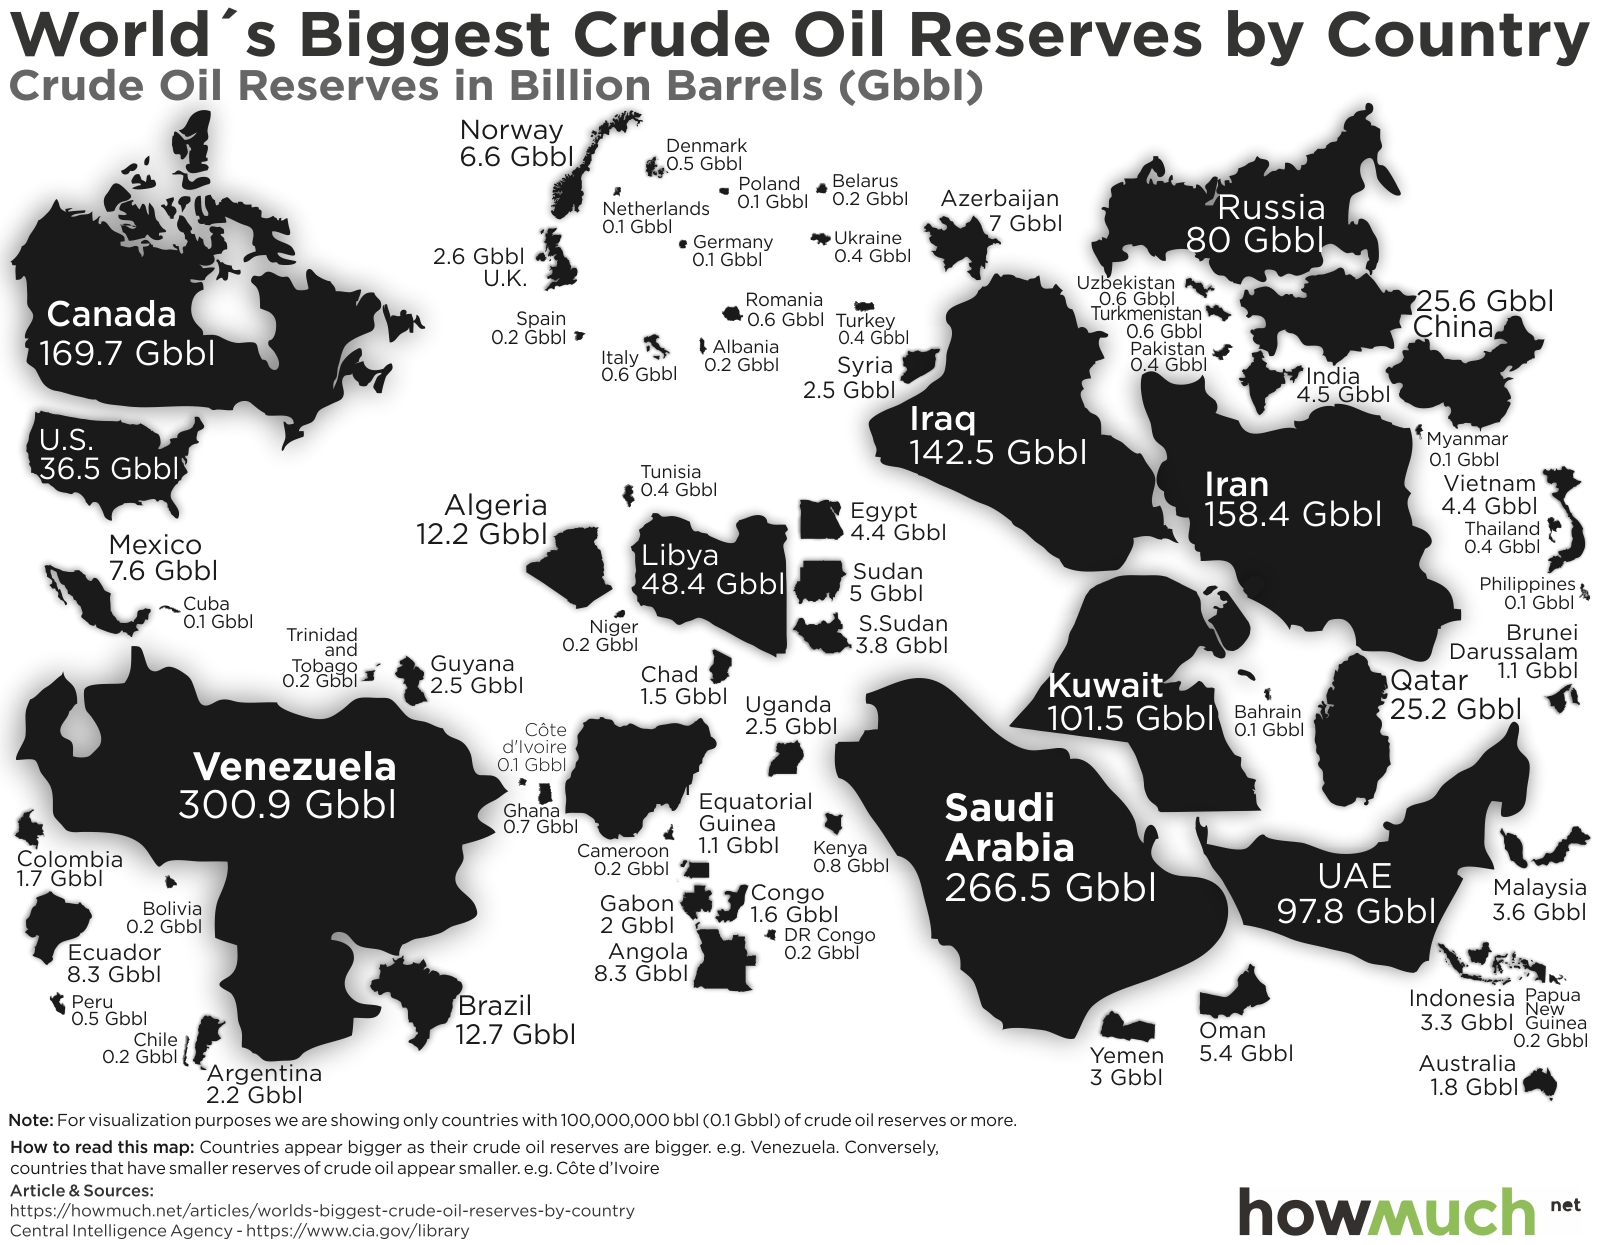 Crude Oil Reserves